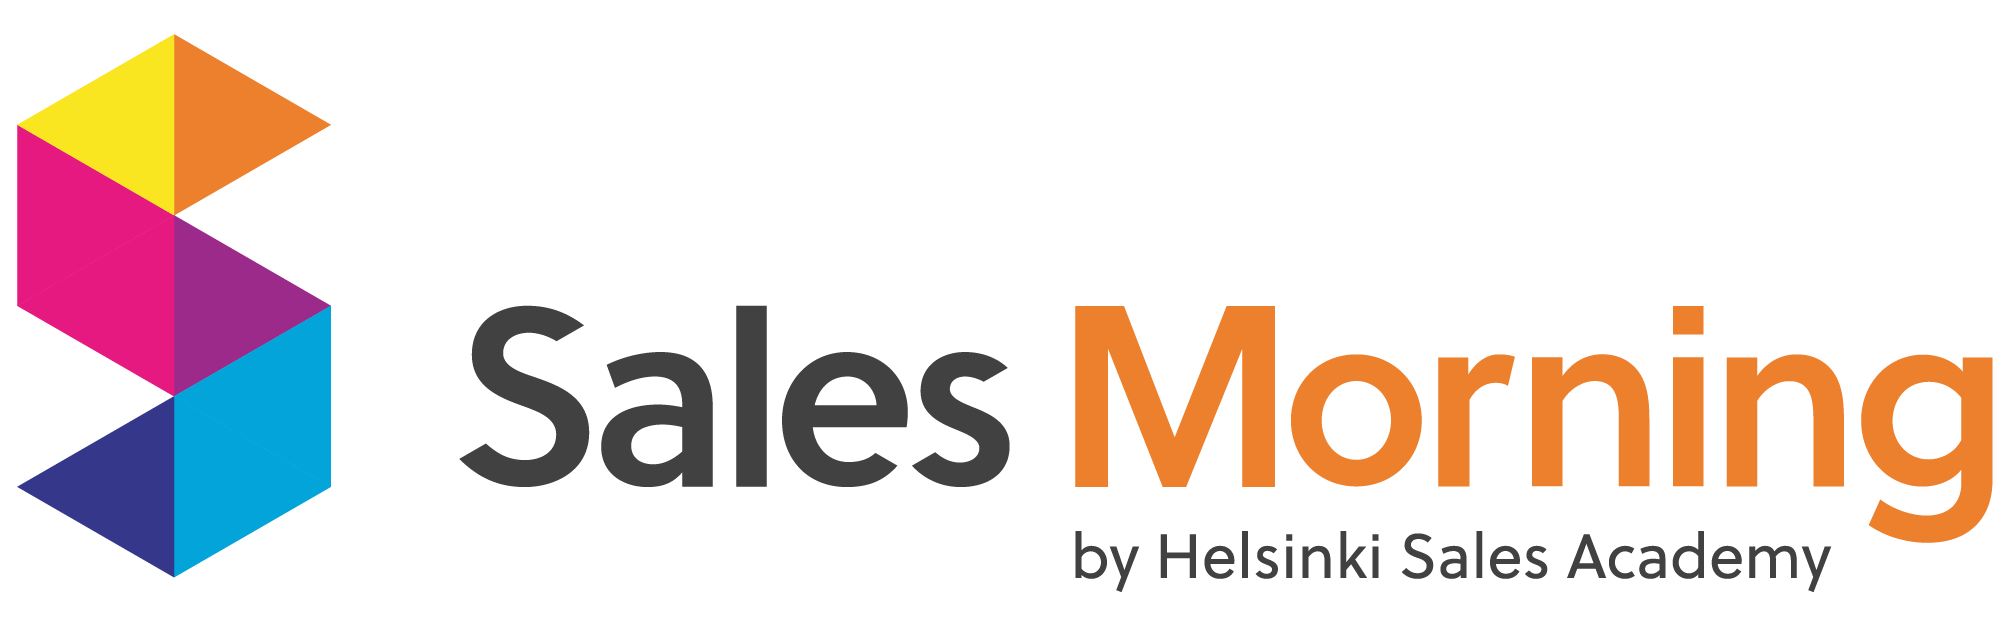 sales morning logo